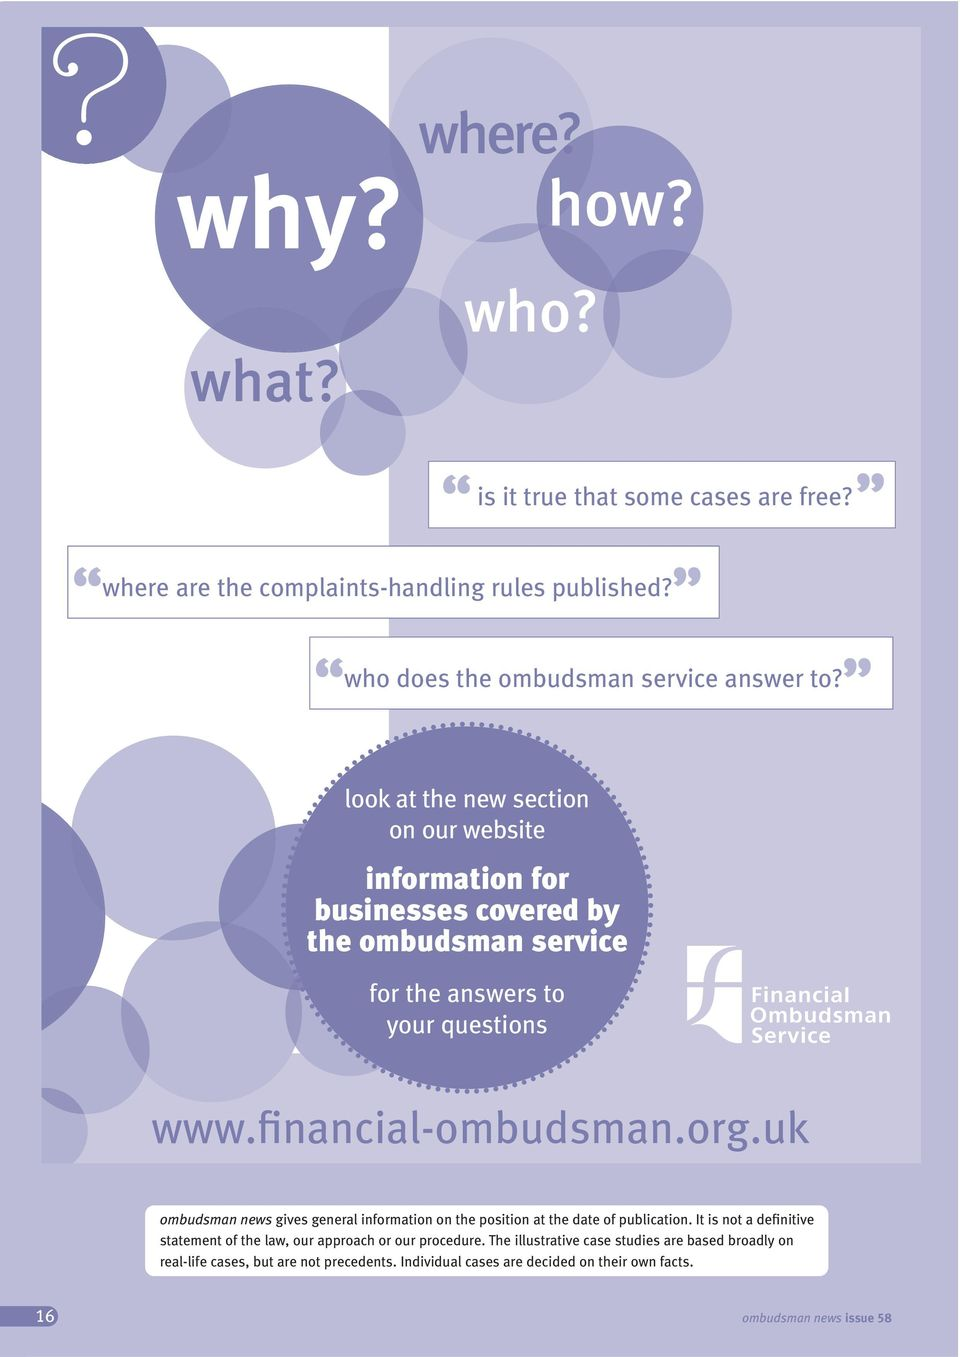 look at the new section on our website information for businesses covered by the ombudsman service for the answers to your questions www.financial-ombudsman.